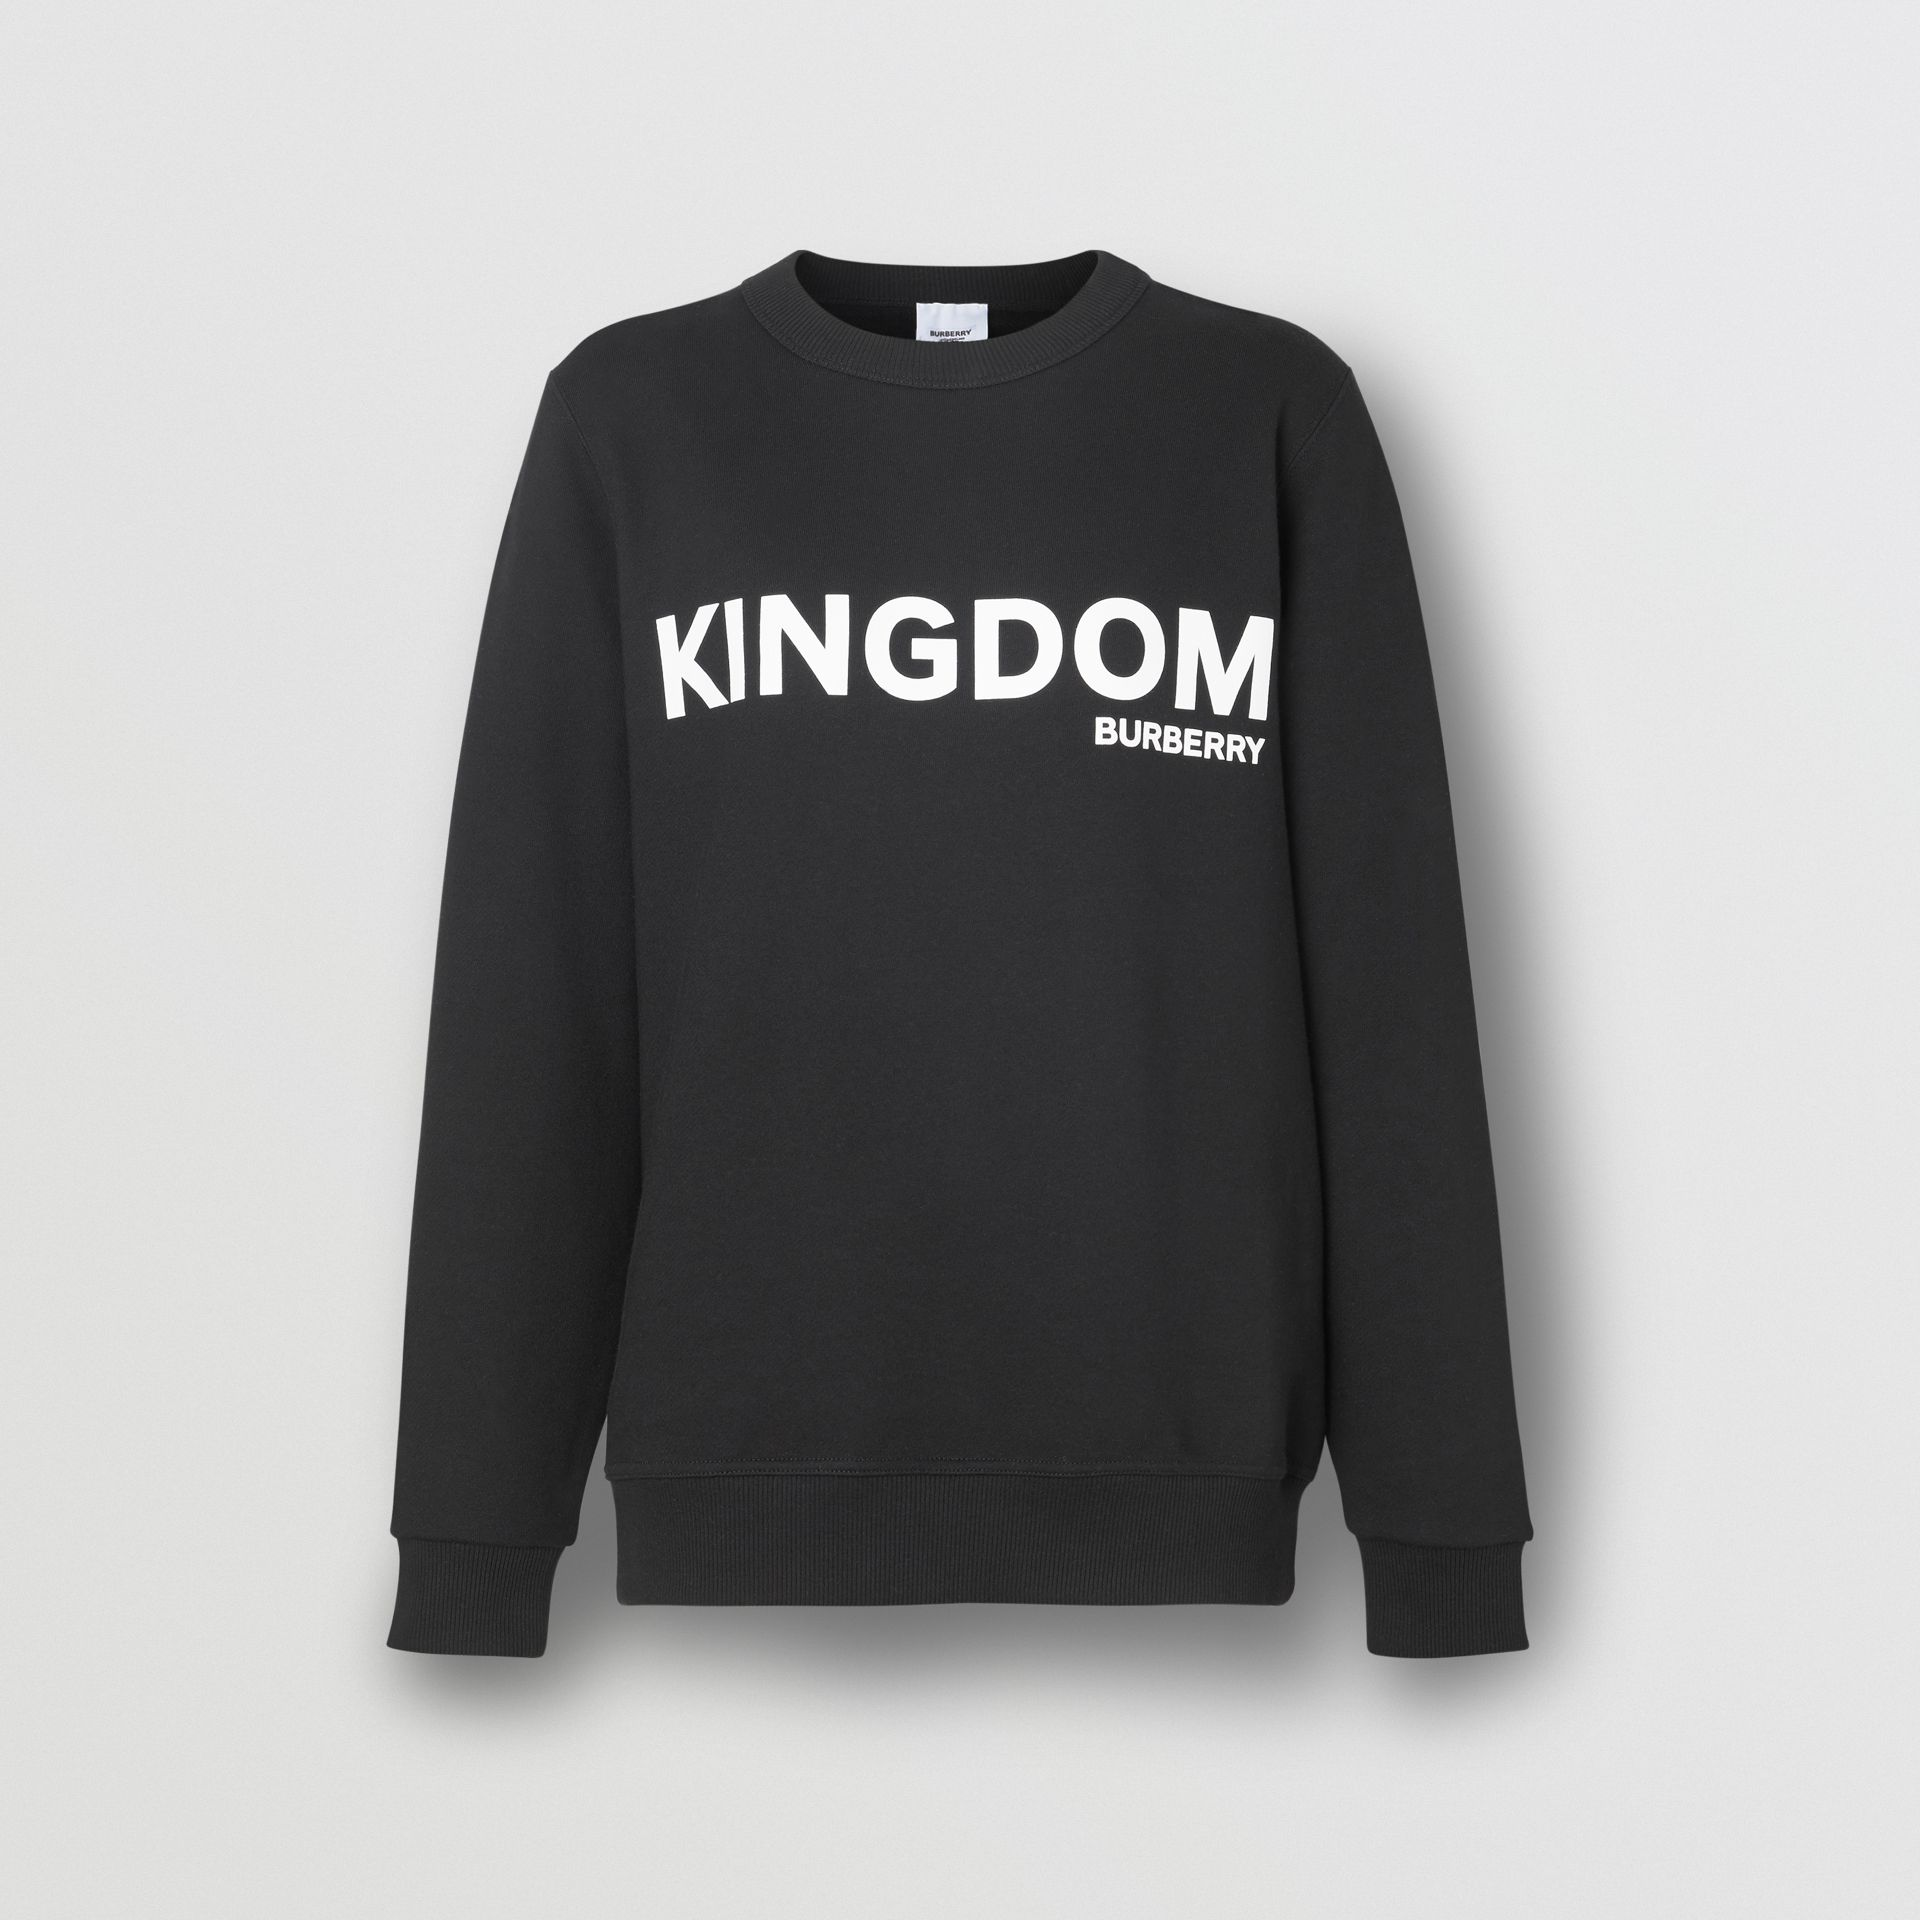 Kingdom Print Cotton Sweatshirt in Black - Women | Burberry - gallery image 3